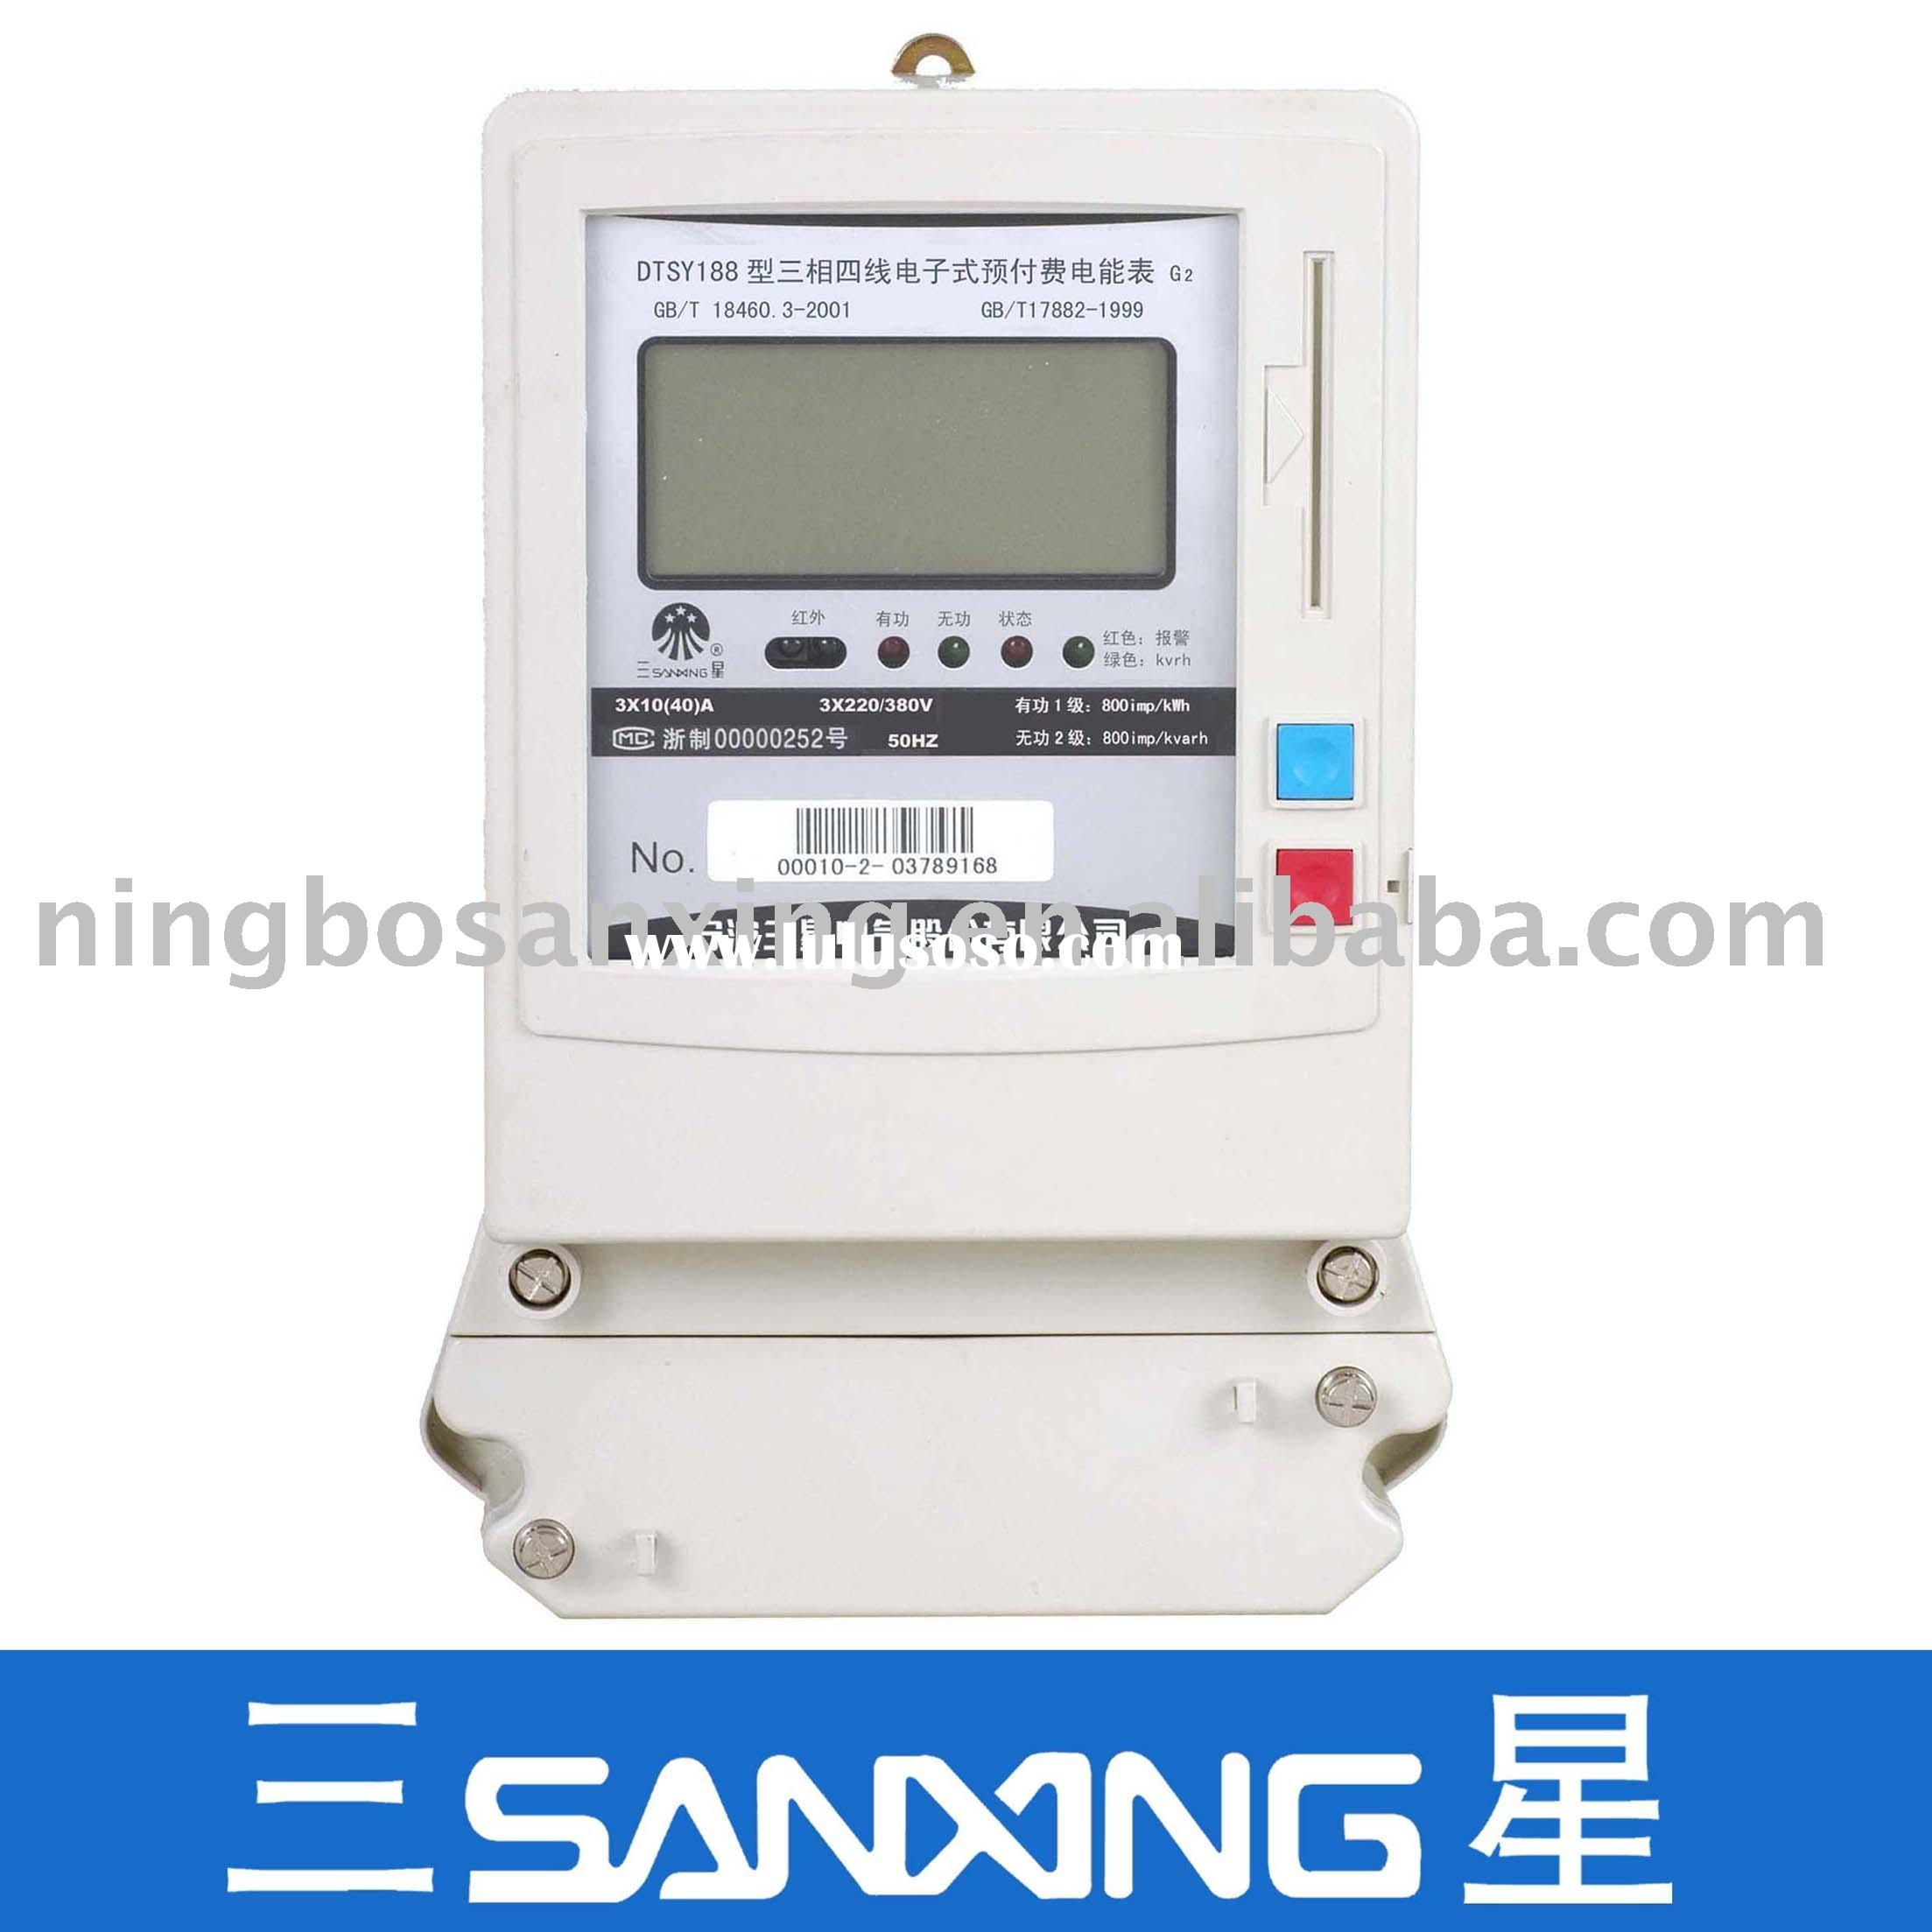 Three-Phase Four-Wire Prepayment Static Meter(electric meter,electronic meter,energy meter)